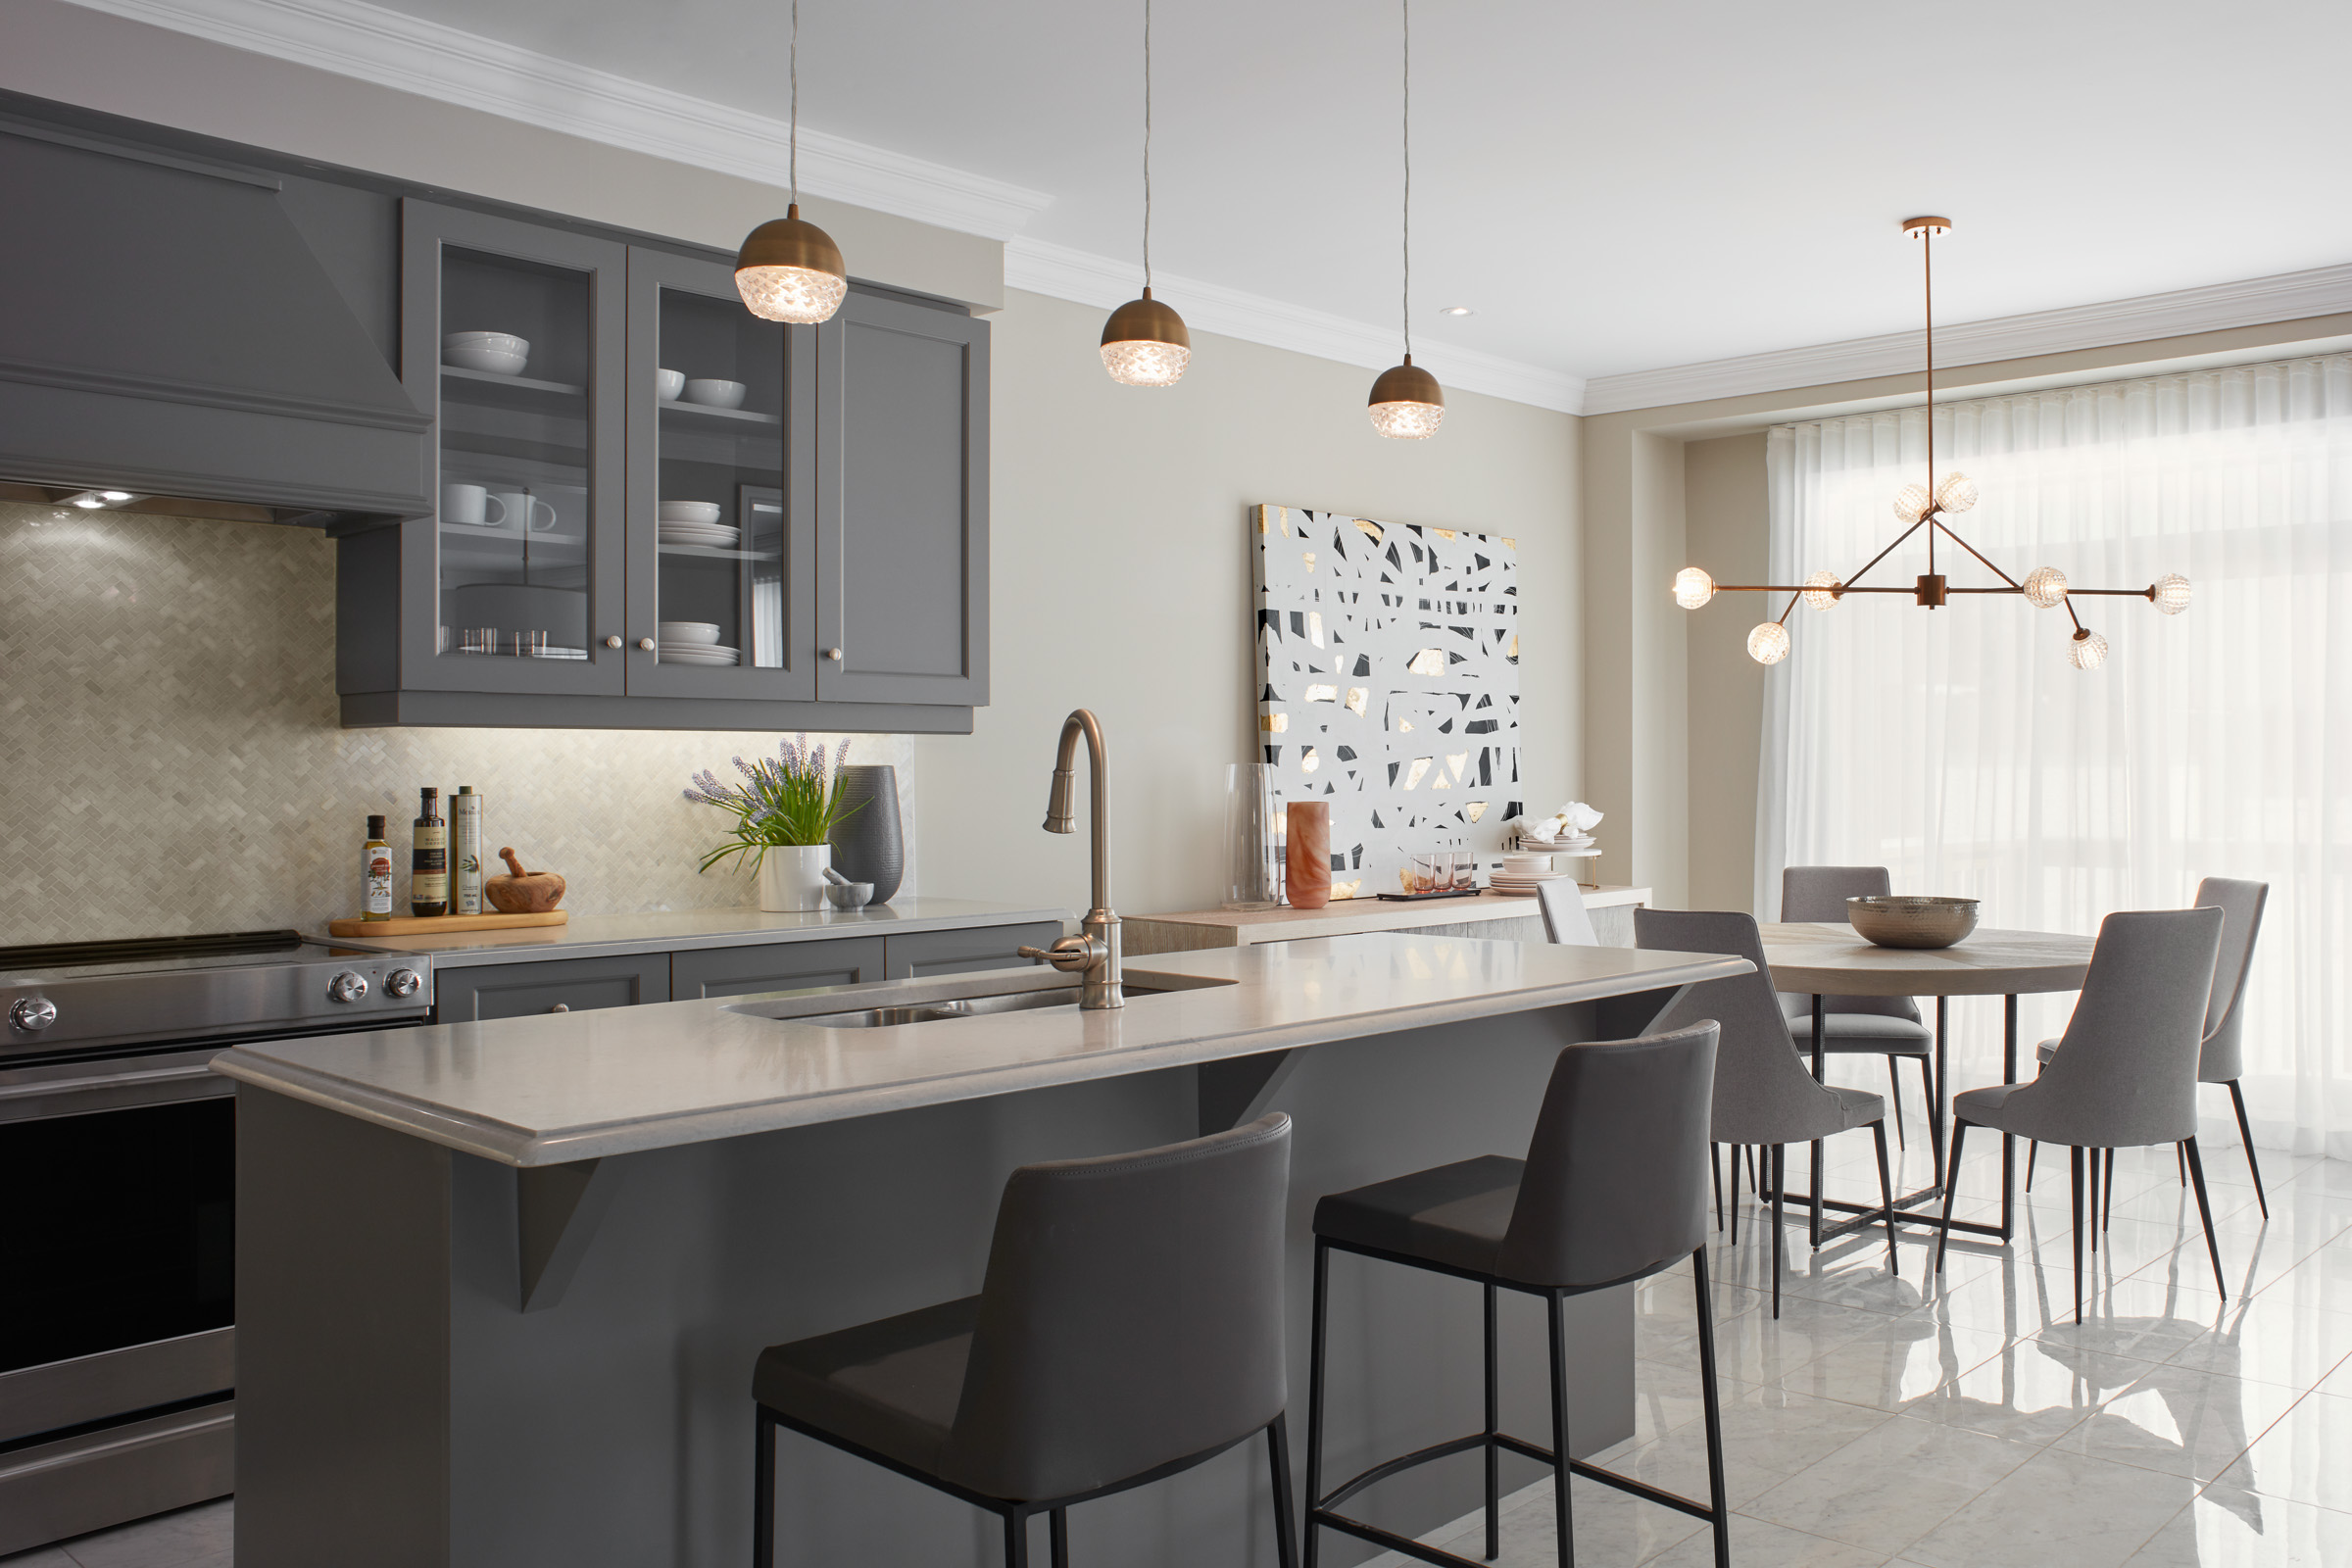 Manor Estate kitchen with island, grey cabinets, marble countertops, and brass light fixtures